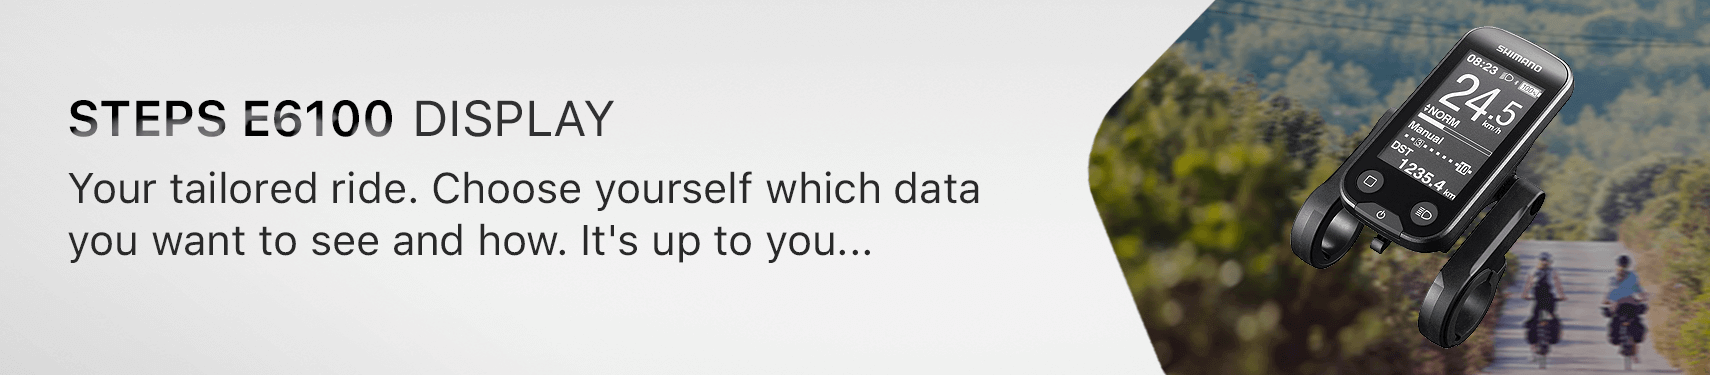 Your tailored ride. Choose yourself which data you want to see and how. It's up to you...